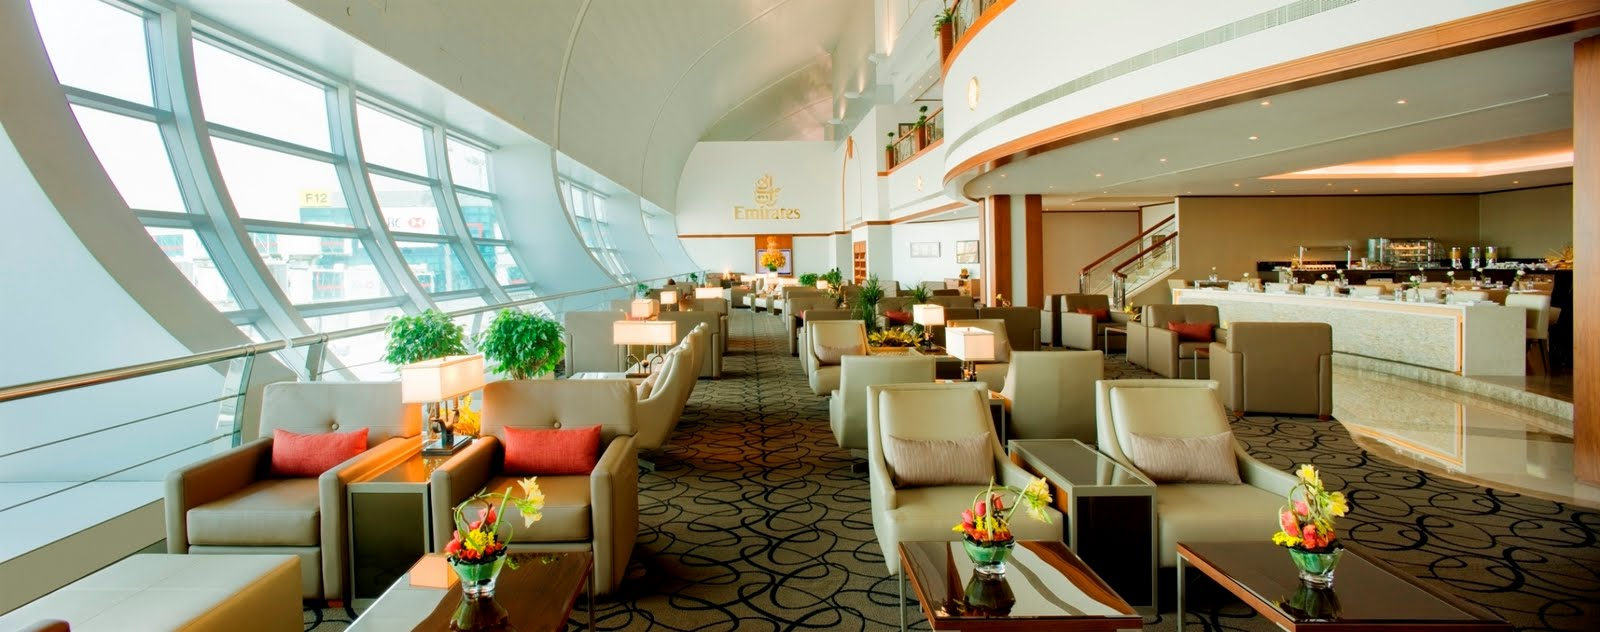 how to get access to airport lounges for free